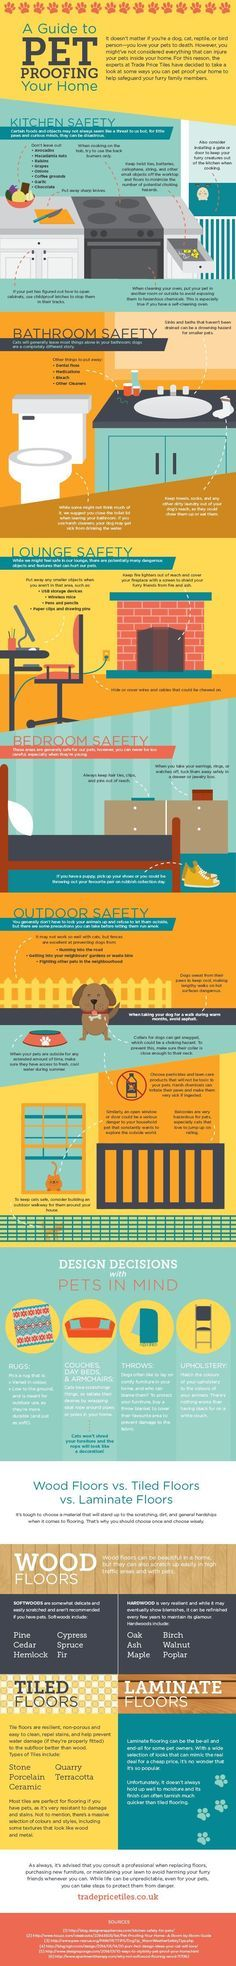 Infographic Pet Proofing Your Home